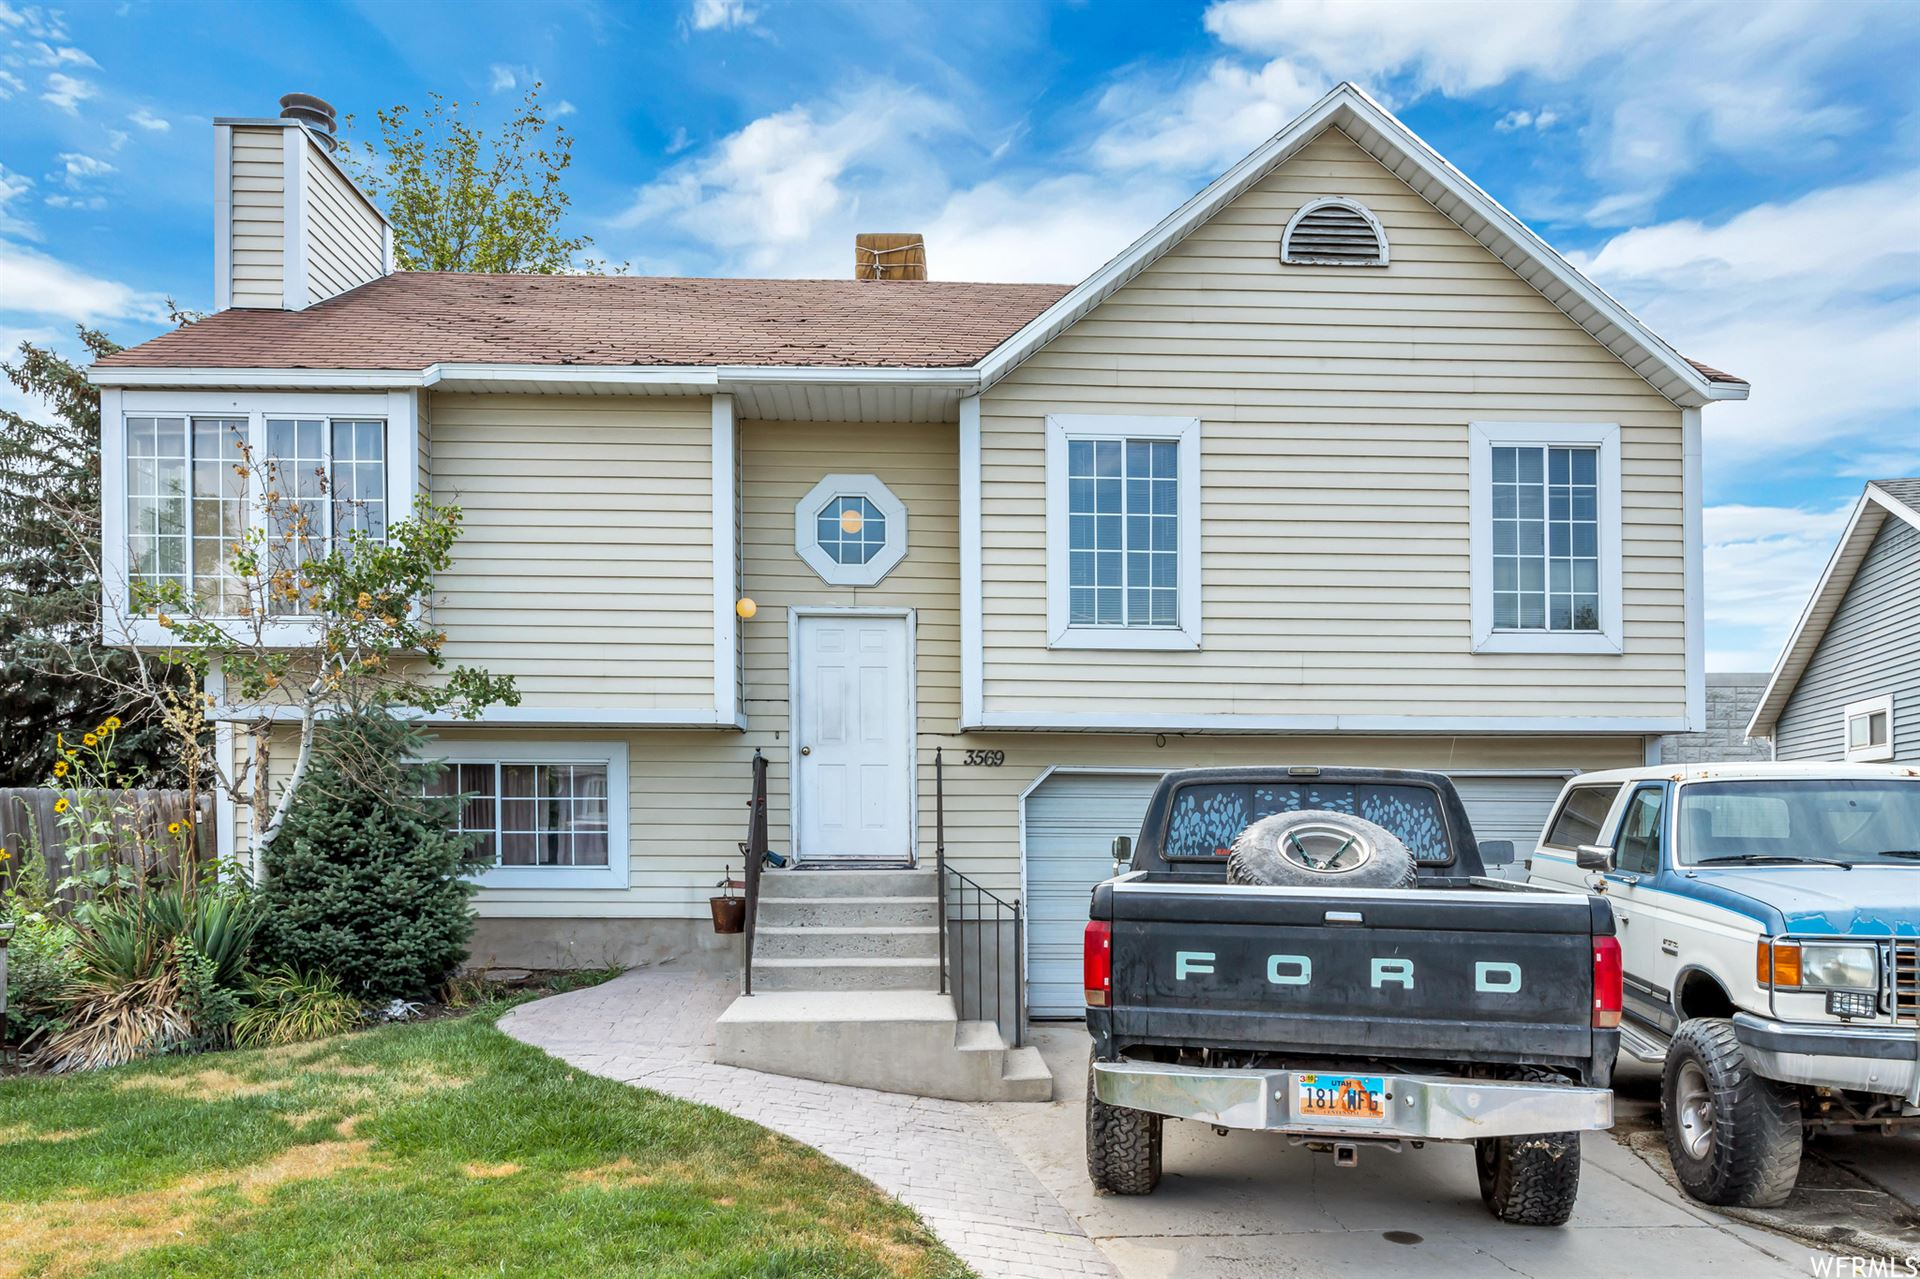 Photo of 3569 W CHISM CT, Taylorsville, UT 84129 (MLS # 1756154)